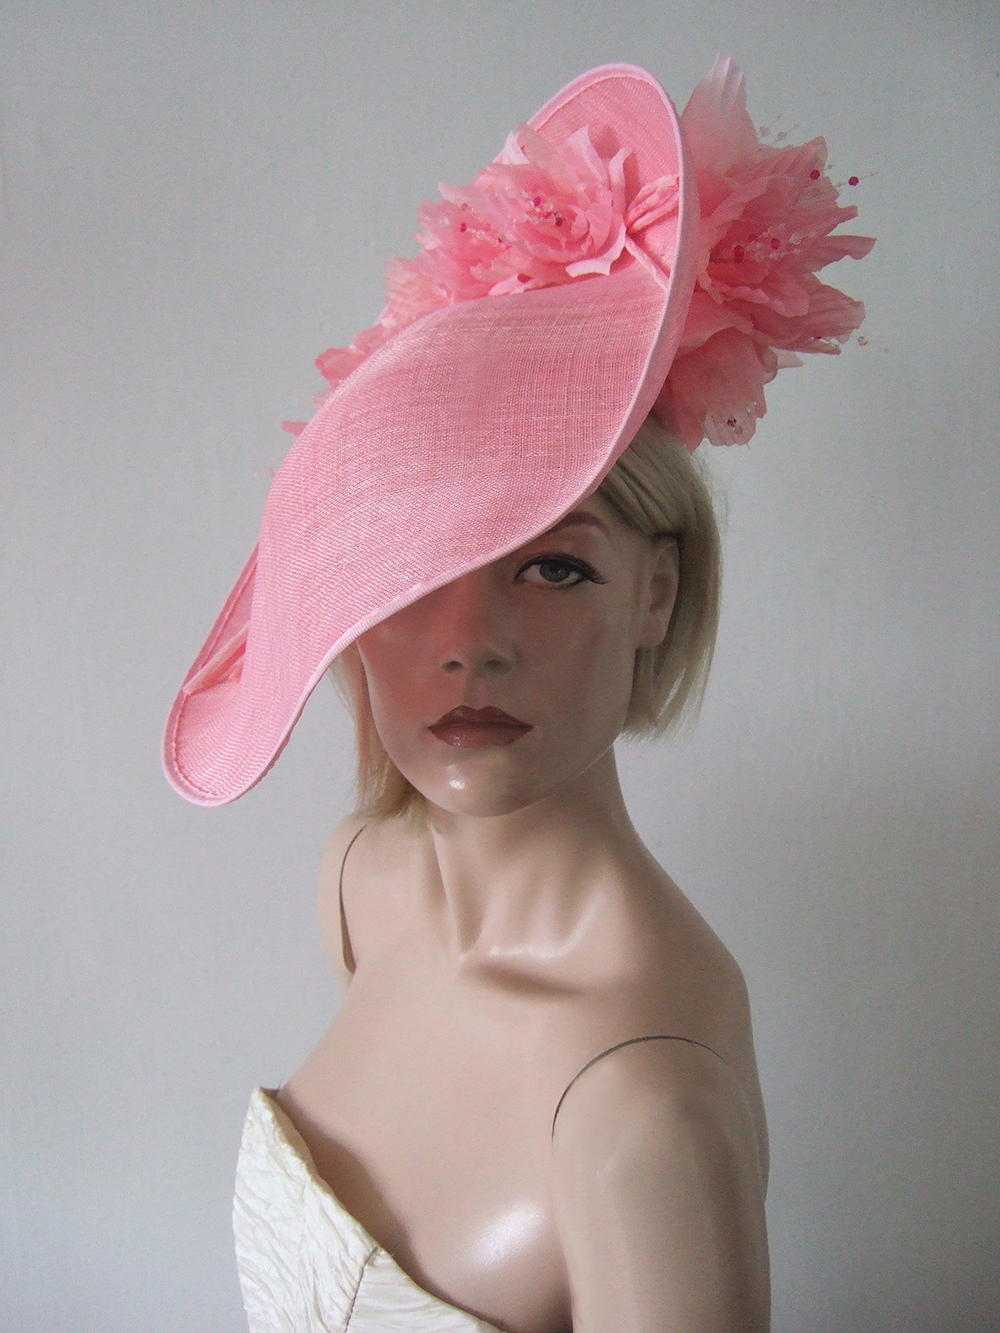 Designer Hats for Hire London. Royal Ascot Hat Rental. Pink Hats for Wedding Guests UK. Best Royal Ascot Hats 2021. Designer Hats for Hire 2021. Pink Fascinators. Hats to wear with a Pink dress. Wedding Hats for Hire UK 2021. Pink Hats for the Races. Mother of the Bride Hat Hire 2021.